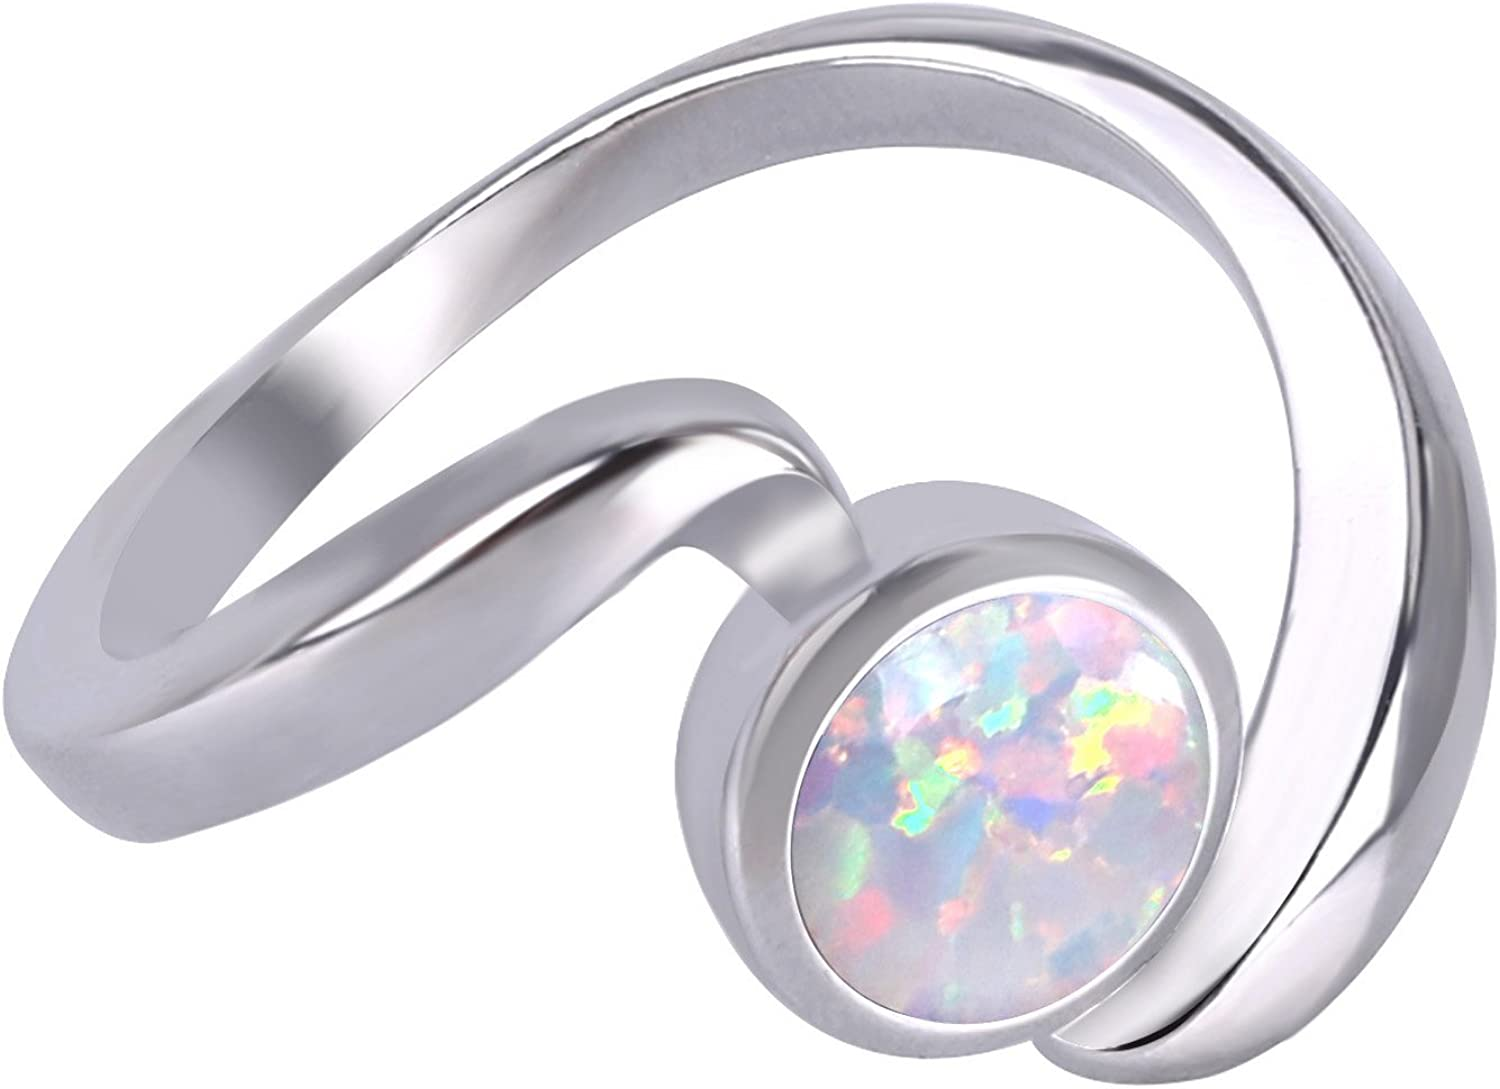 Size 6 to 10 KELITCH Jewelry Lab Created-Opal Twist Rings Valentines Gift for Her